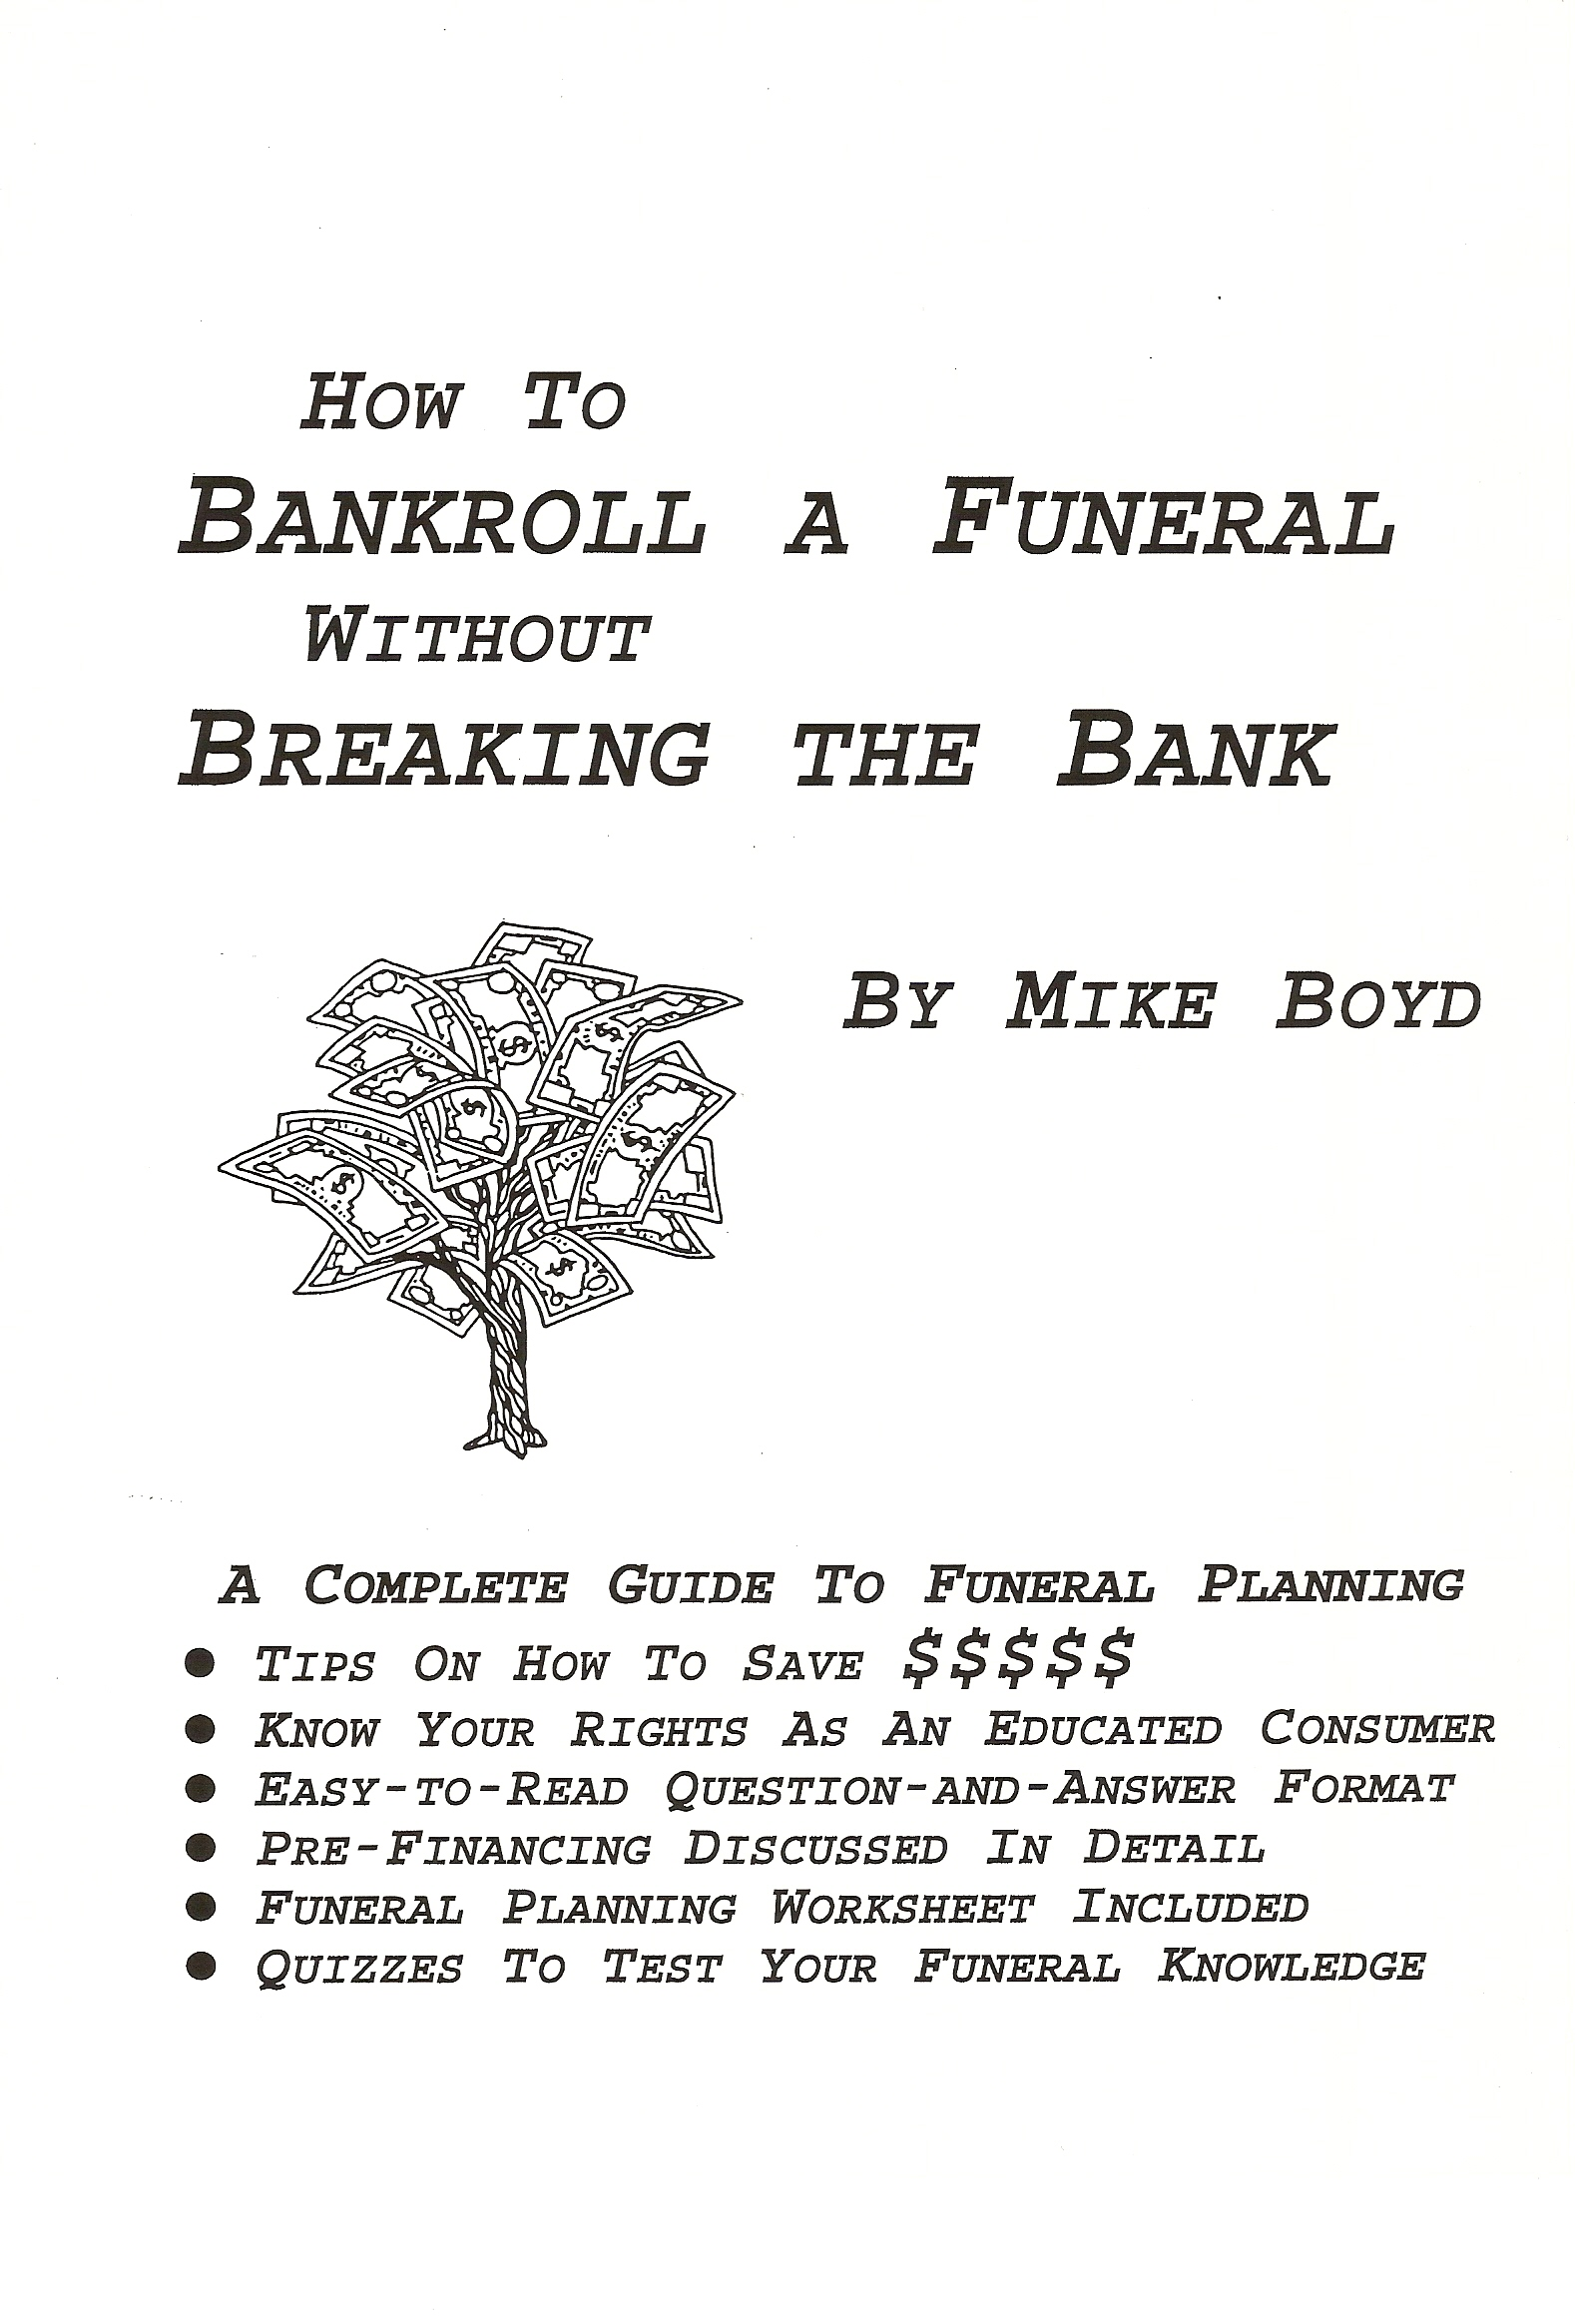 Printables Funeral Planning Worksheet planning workbook ask the funeral expert mike boyd has written a basic self help consumer interactive about from business perspective to bankroll funera